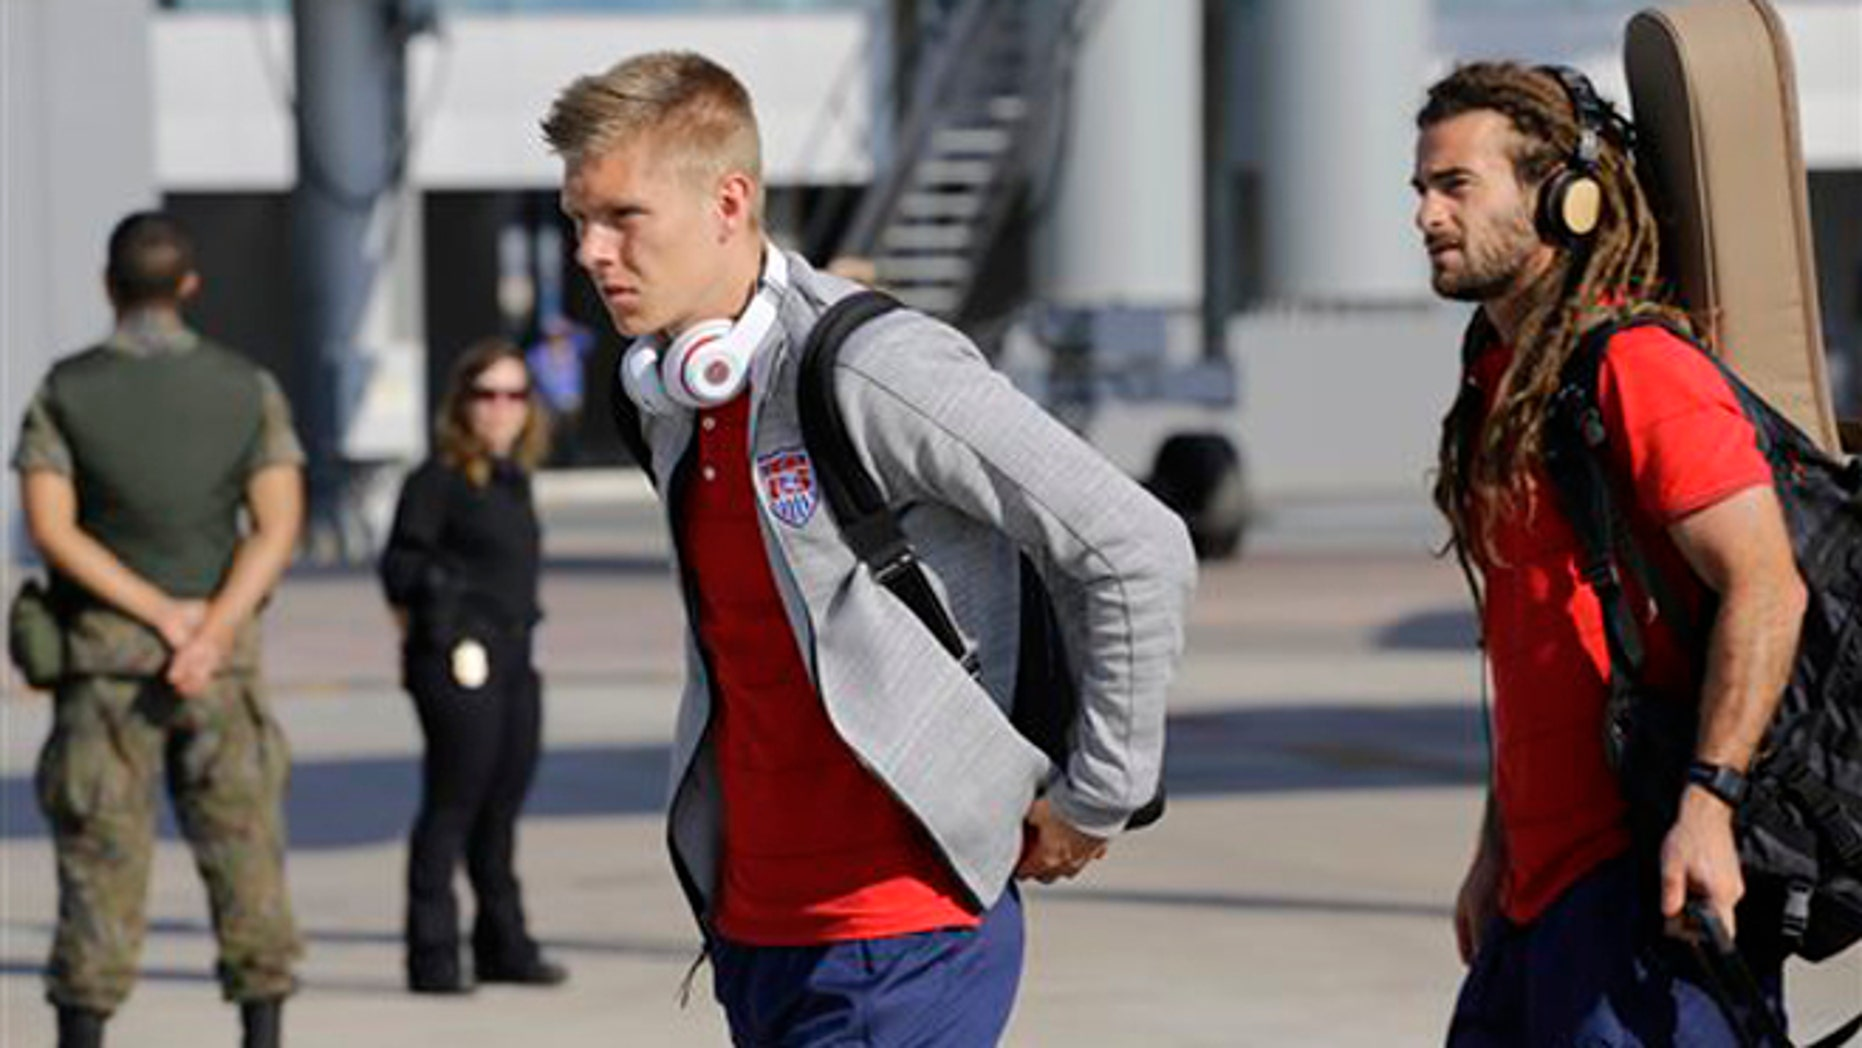 United States' national soccer team players Aron Johannsson, left, and Kyle Beckerman arrives at the Sao Paulo International airport in Brazil, Monday, June 9, 2014. The U.S. team arrived in Sao Paulo to continue their preparations for the upcoming Brazil 2014 World Cup, which starts on June 12. (AP Photo/Nelson Antoine)